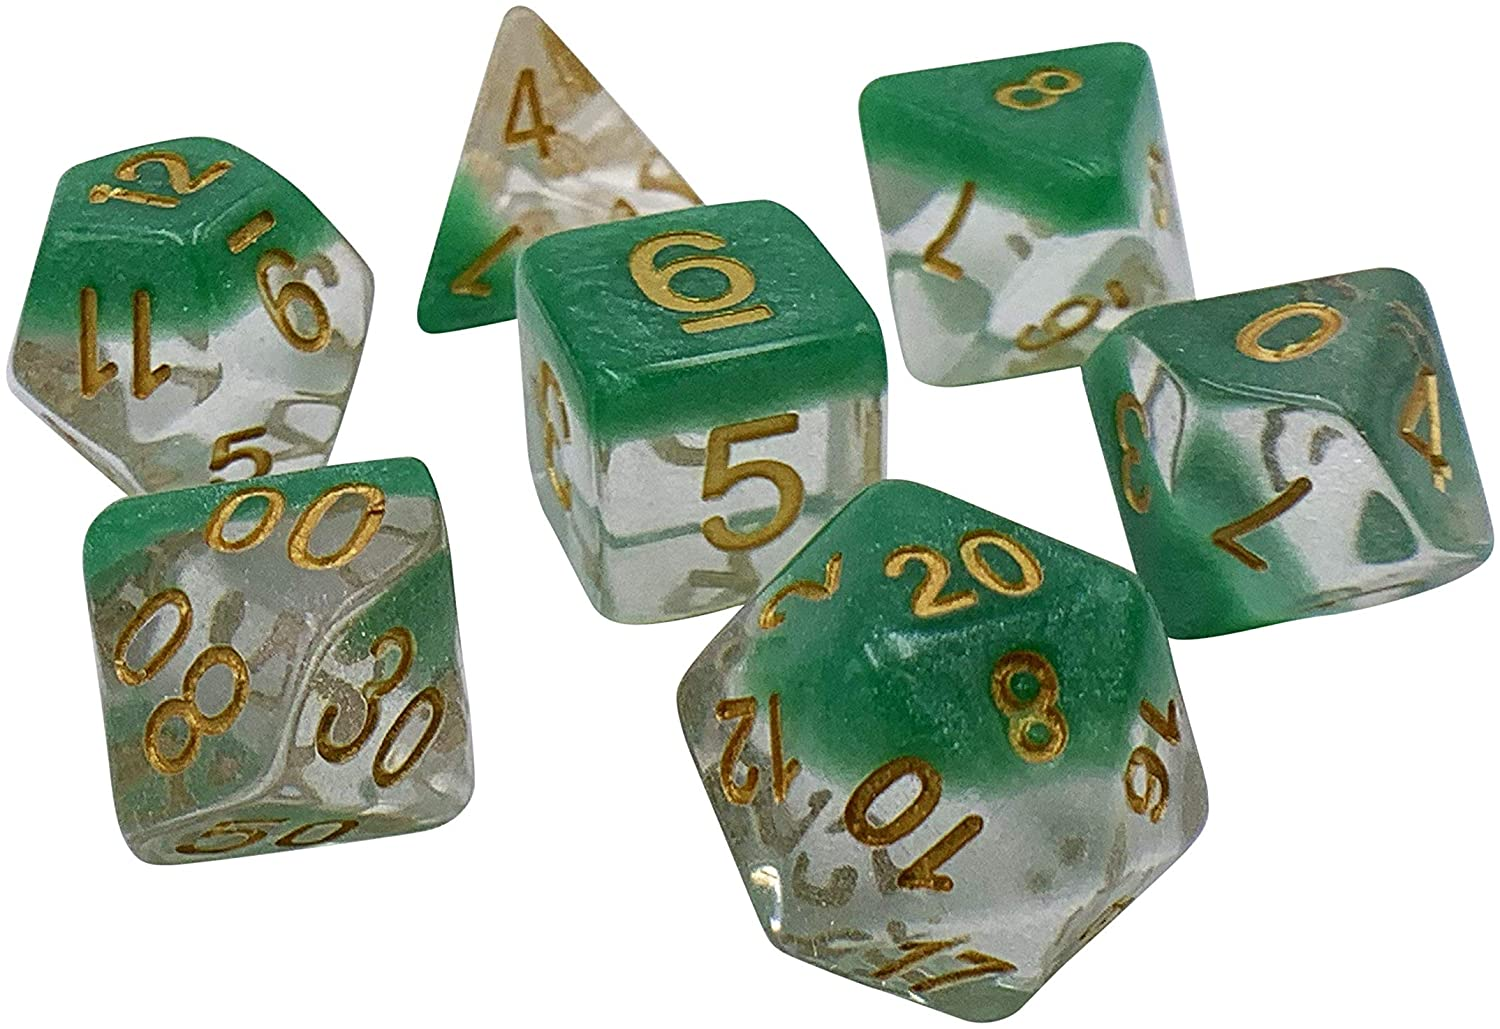 7 Piece Polyhedral DND Dice Set by D20 Collective Dice for Table Top Dungeons and Dragons RPGs and Gaming